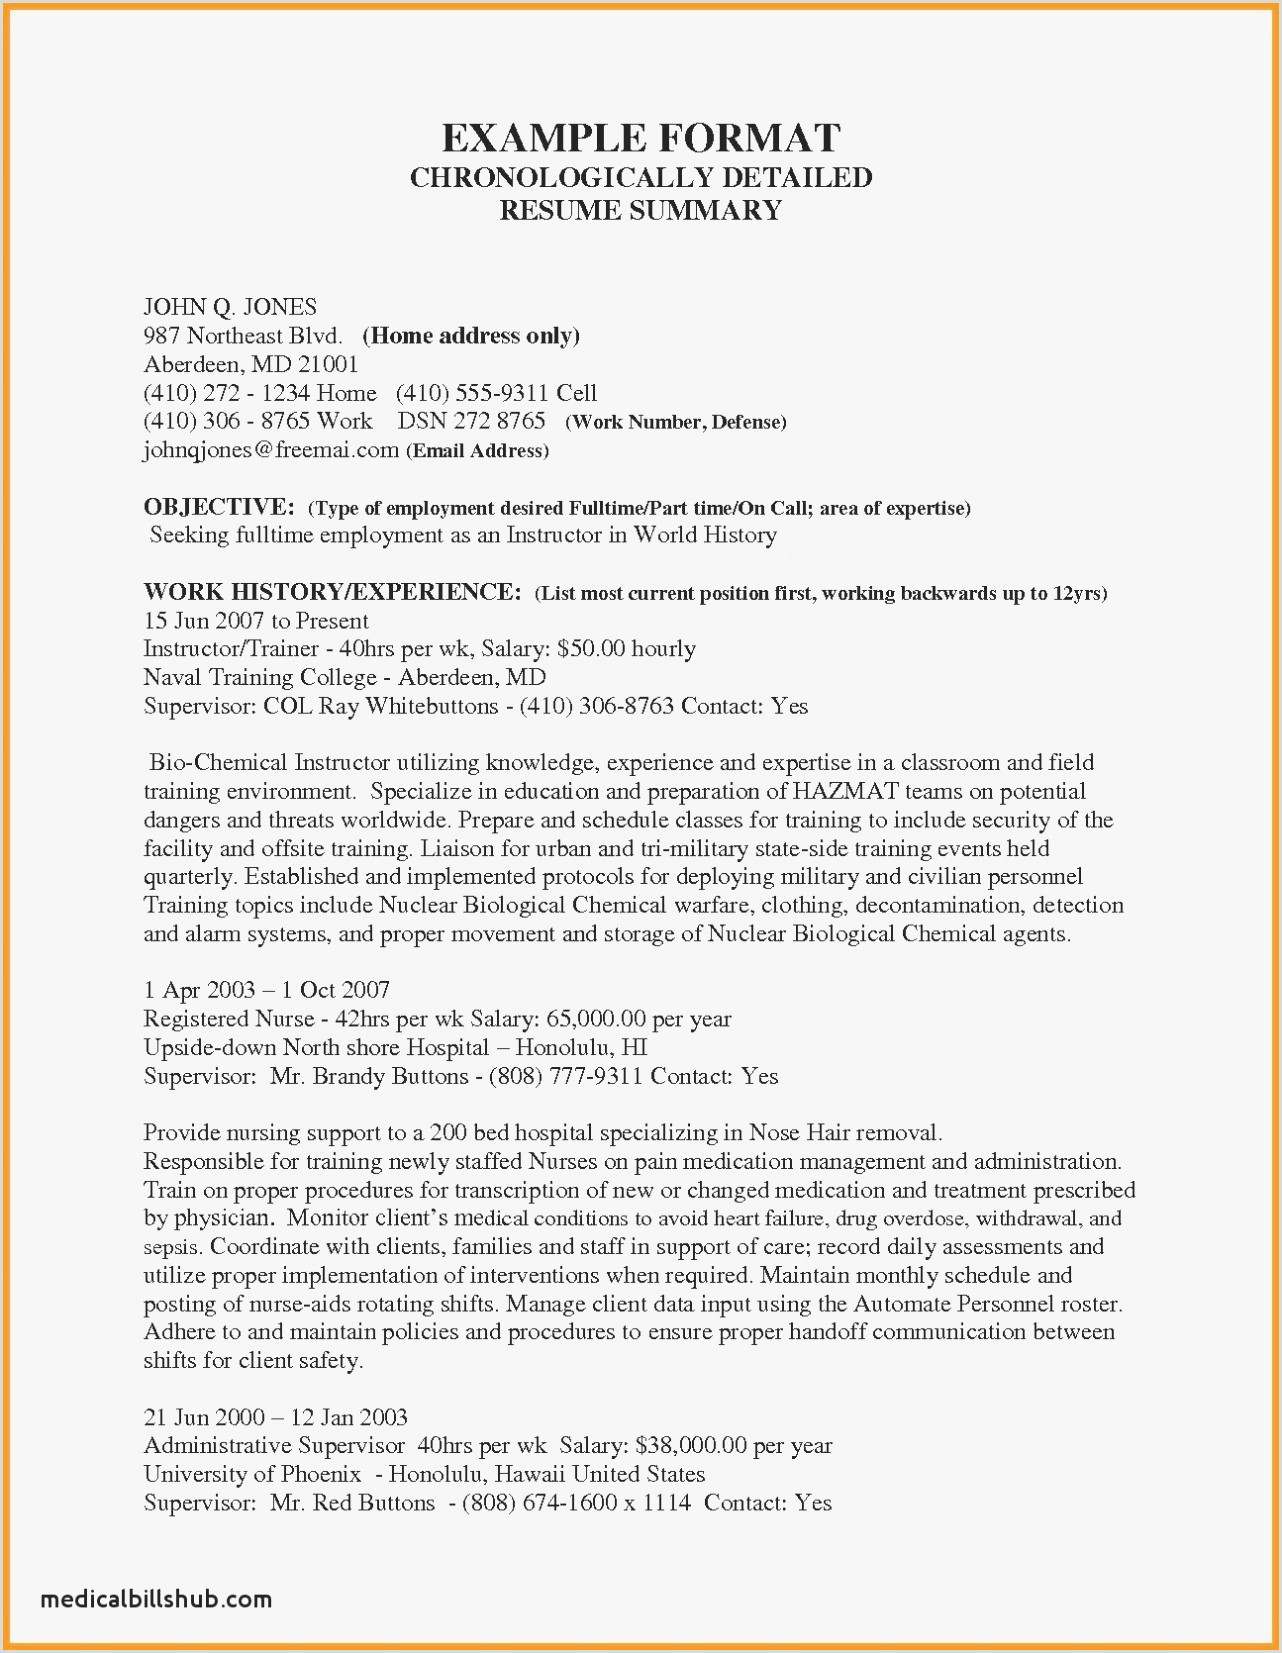 Resume format for Nursing Job Lovely Resume Template Nursing Australia – Kursknews